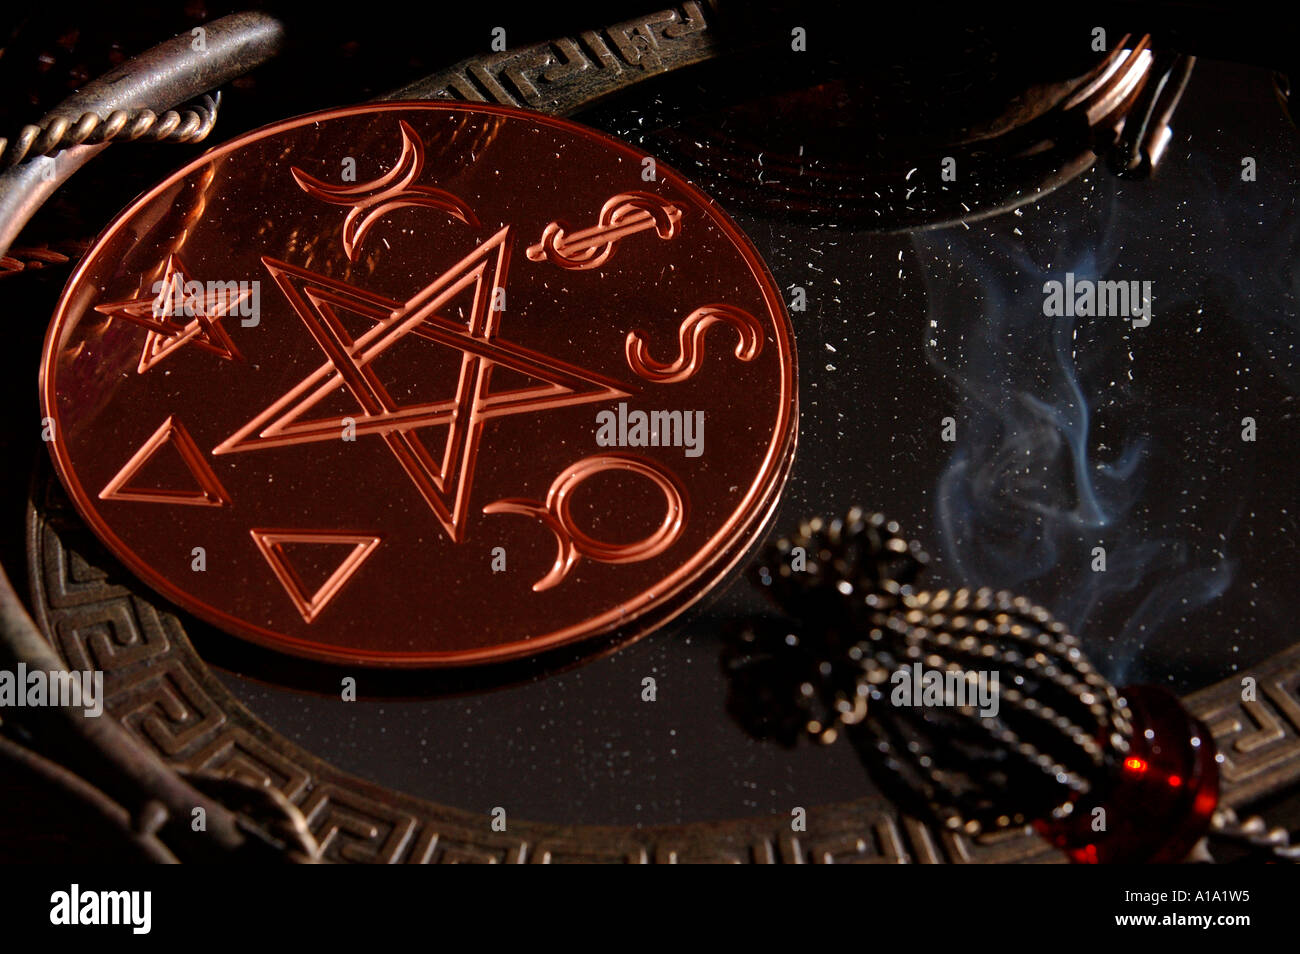 Magical tools Stock Photo: 5824340 - Alamy